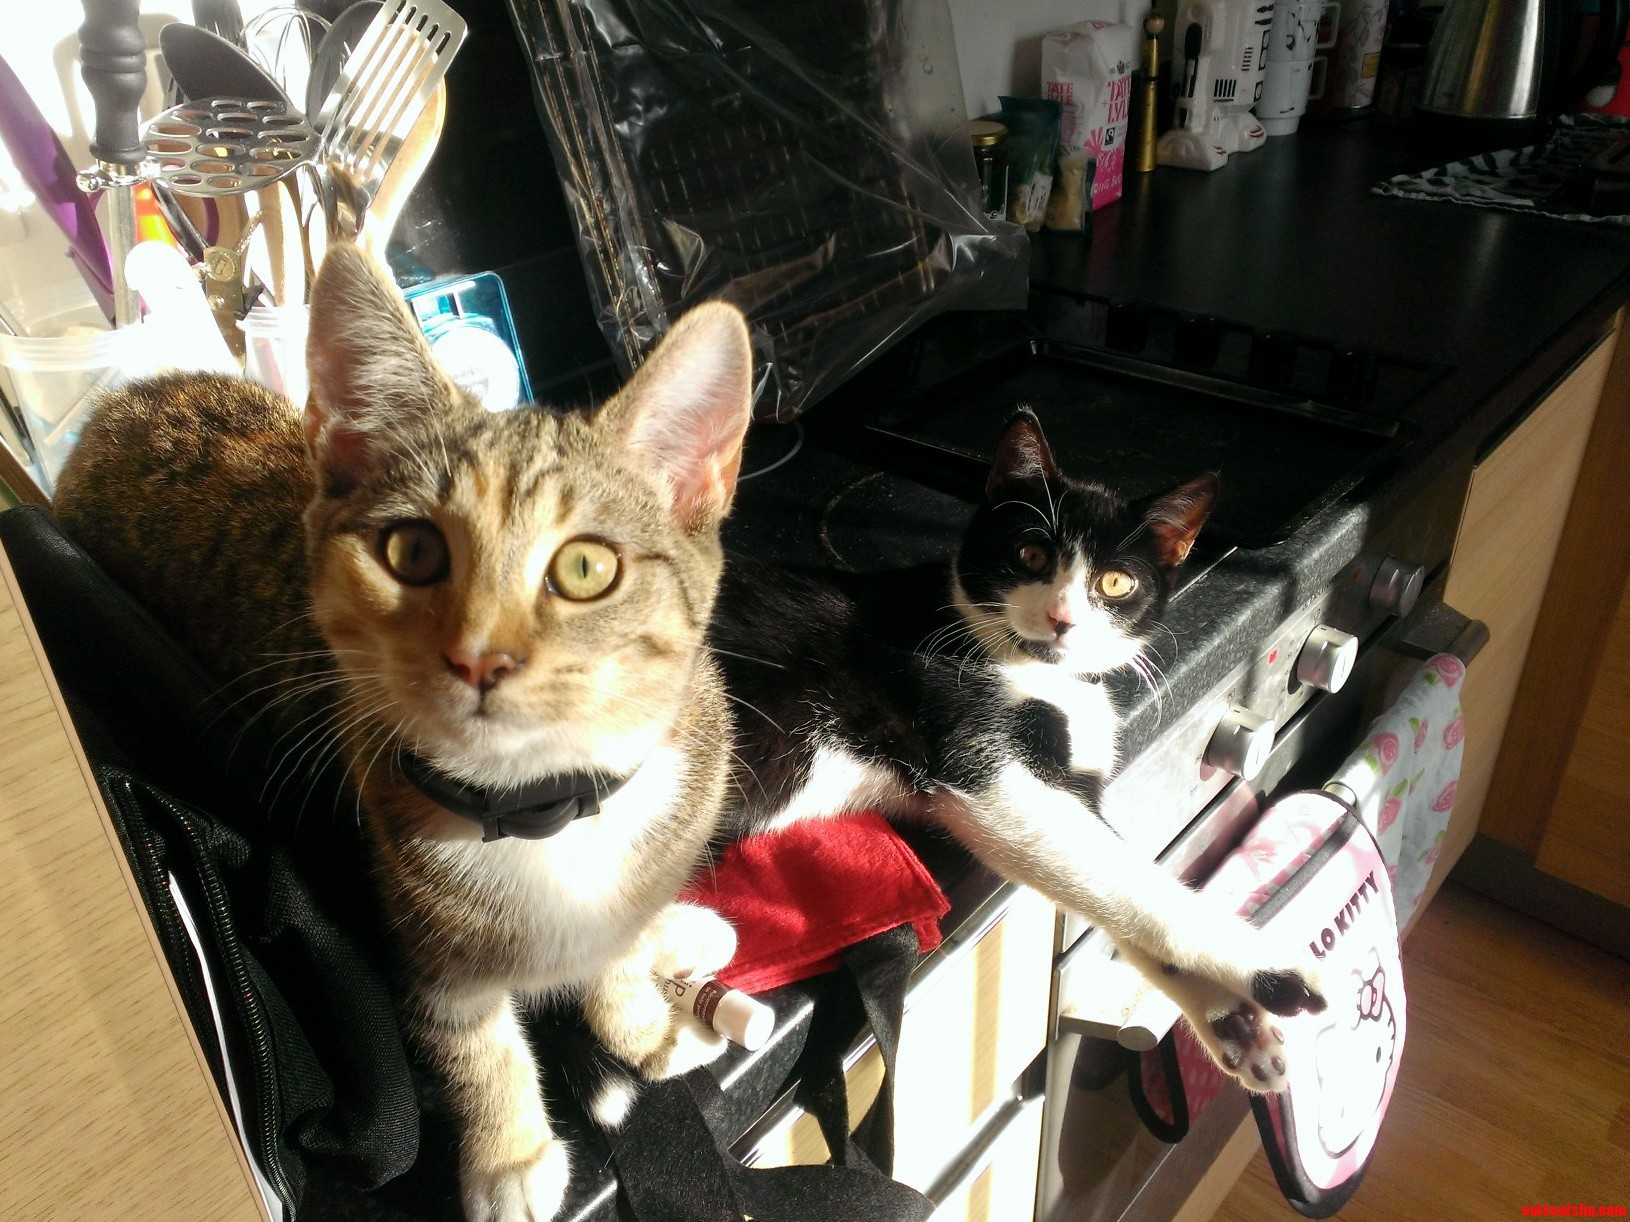 Nibbler and rocket soaking up some rays